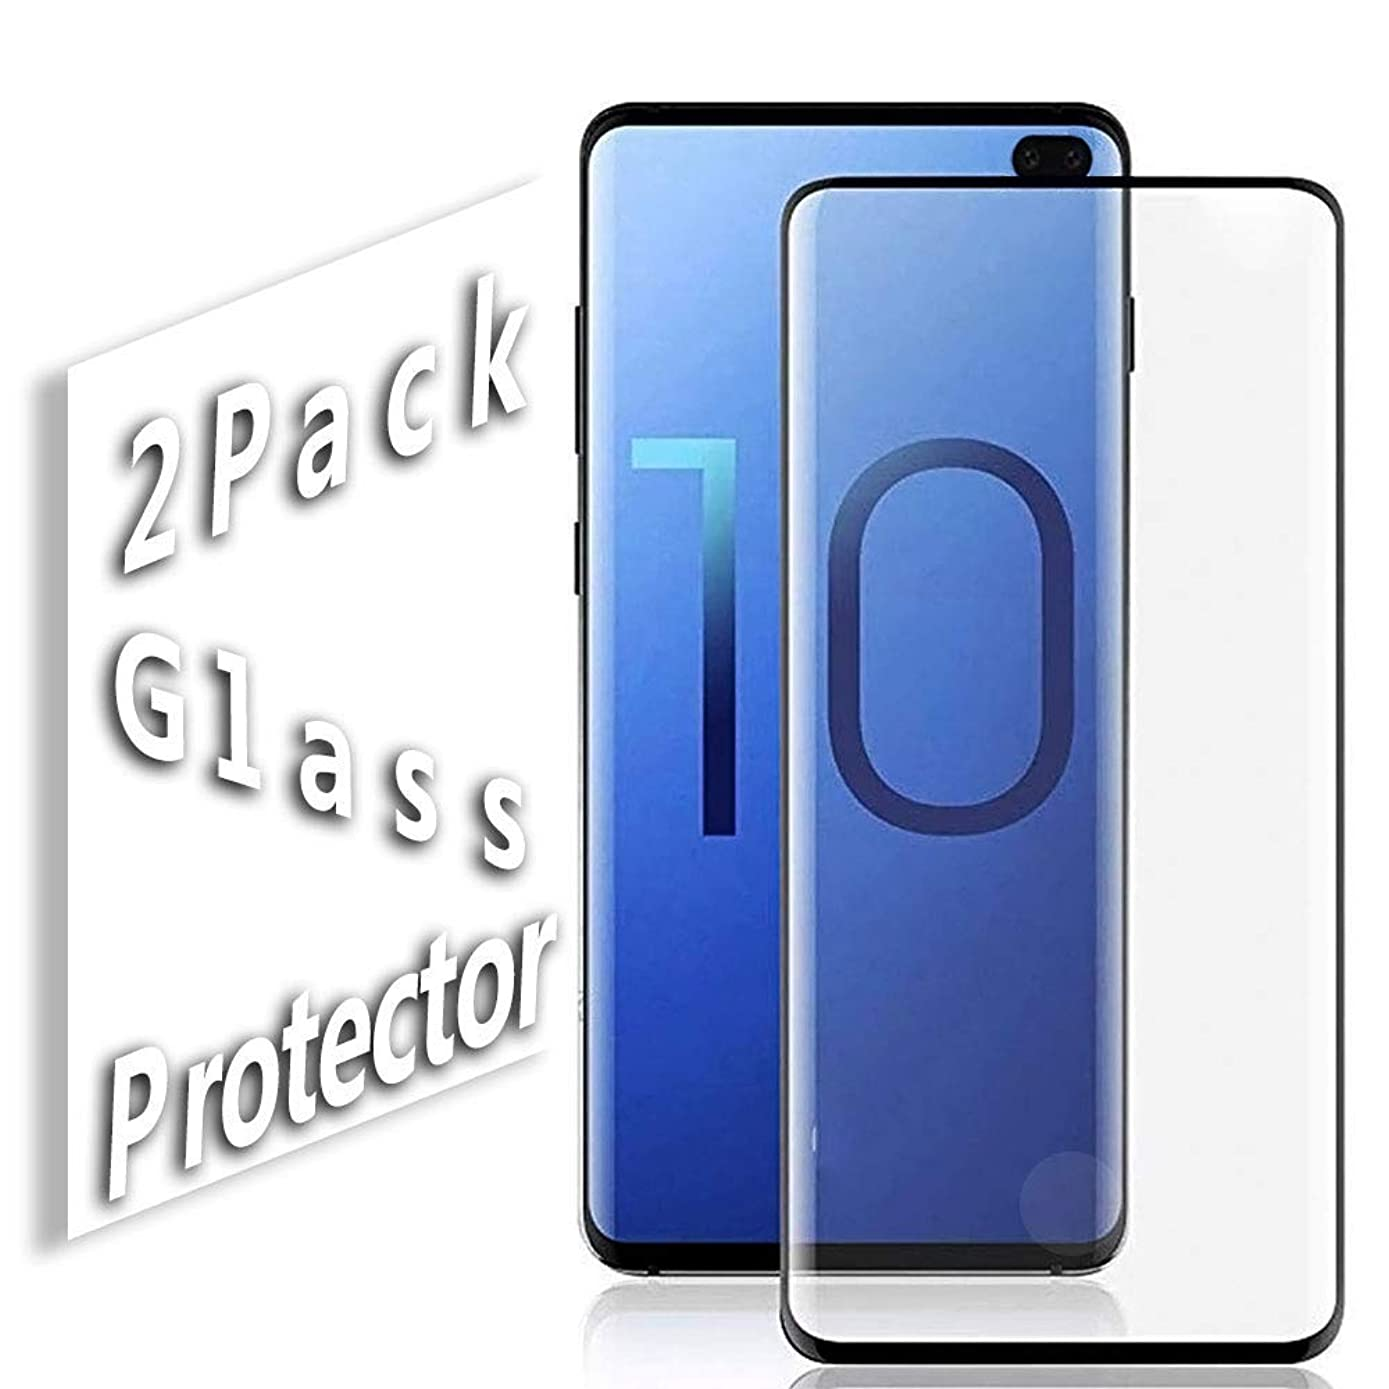 Galaxy S10 Plus Screen Protector,Updated Version-Zone Support Fingerprint Unlock [No Bubbles][Case Friendly] Tempered Glass Screen Protector Compatible with Samsung Galaxy S10 Plus(Black)